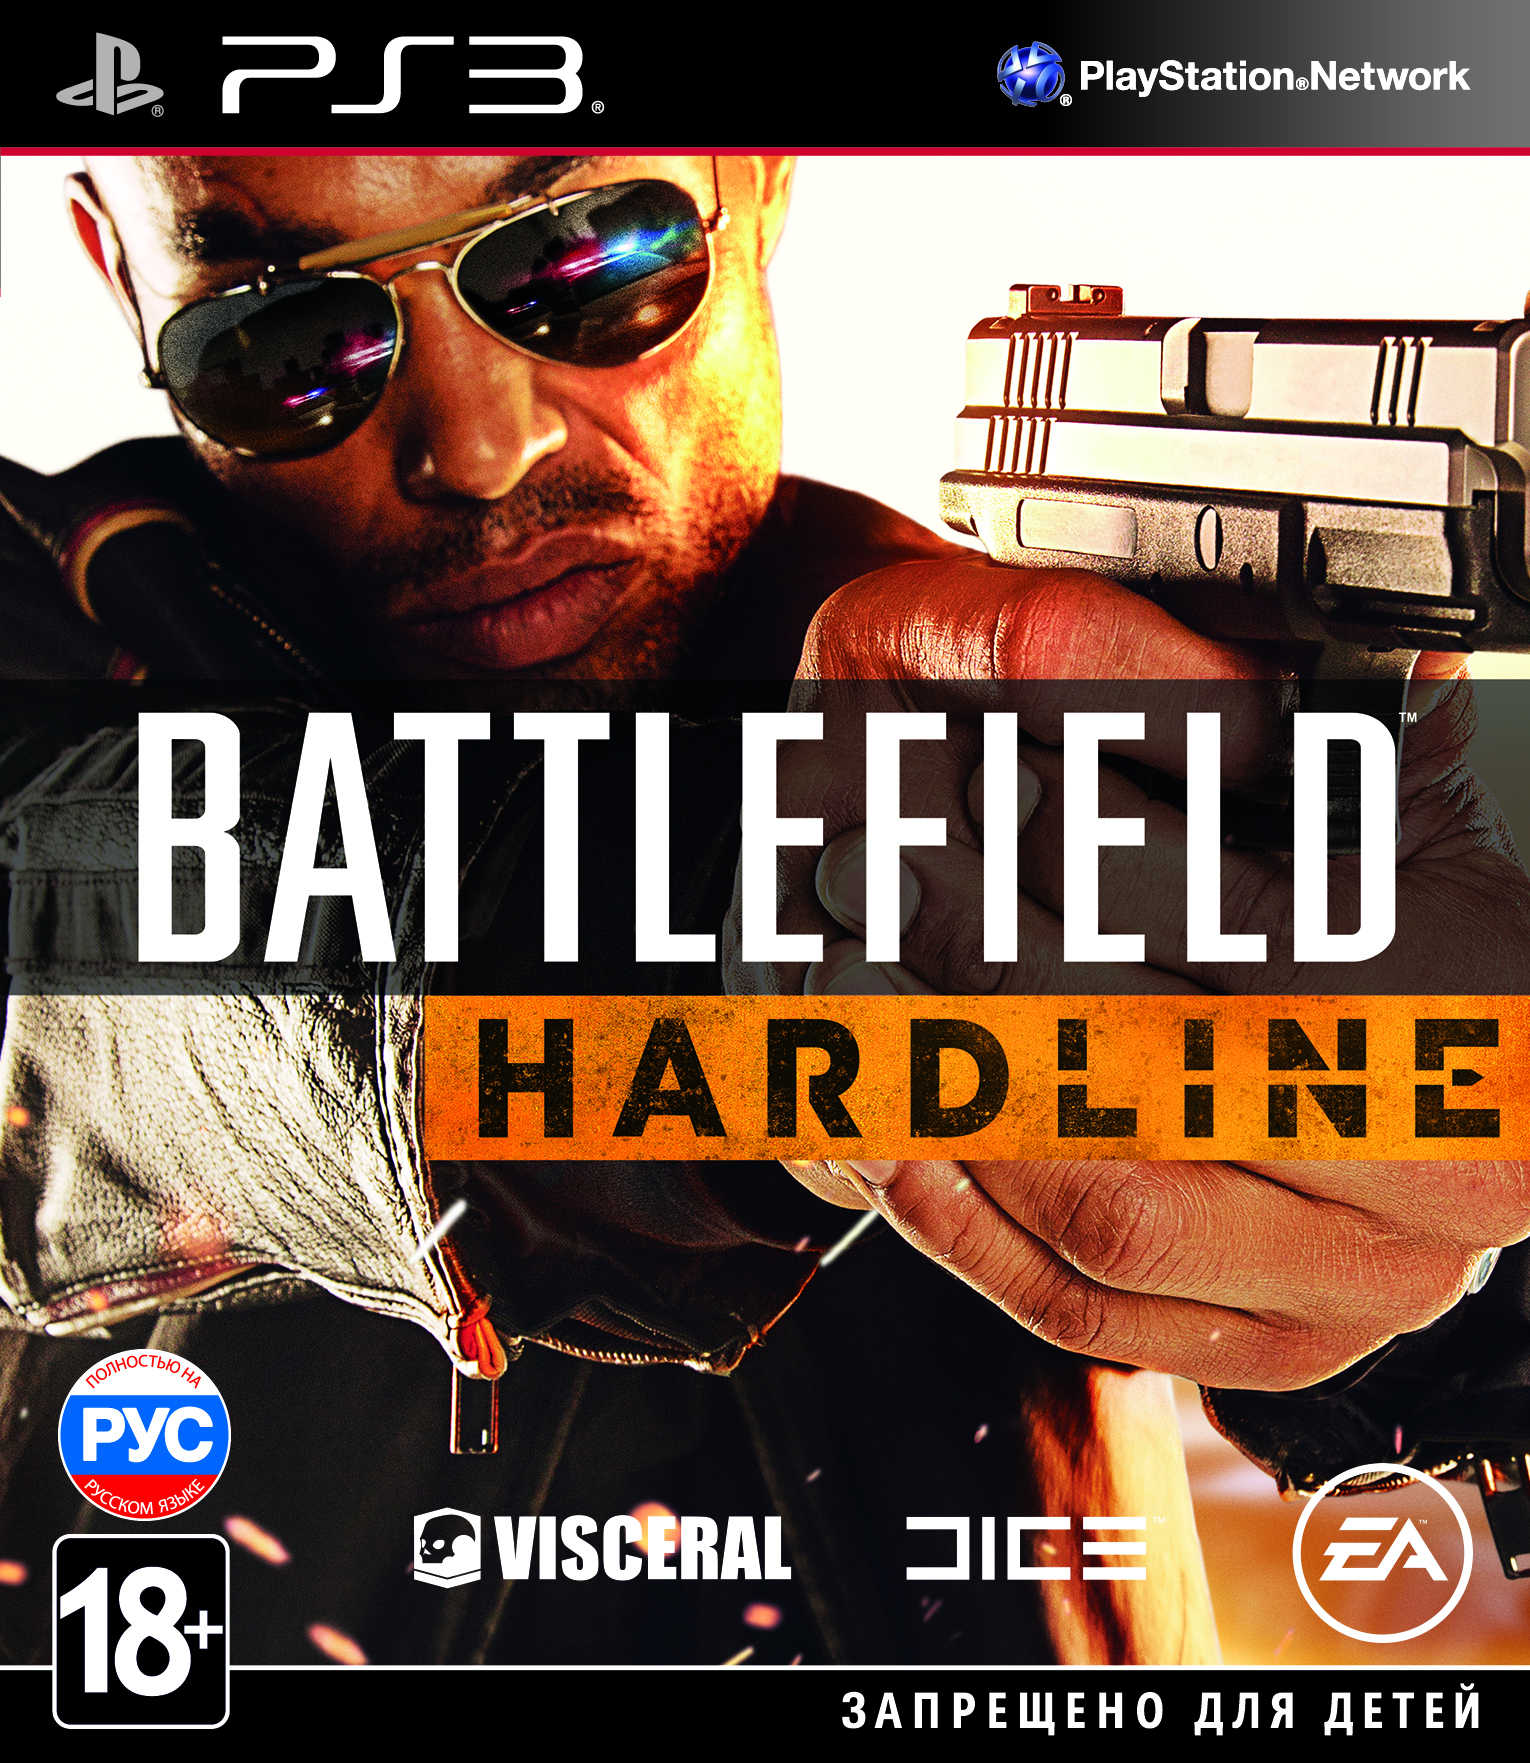 Battlefield Hardline (PS3) (GameReplay)